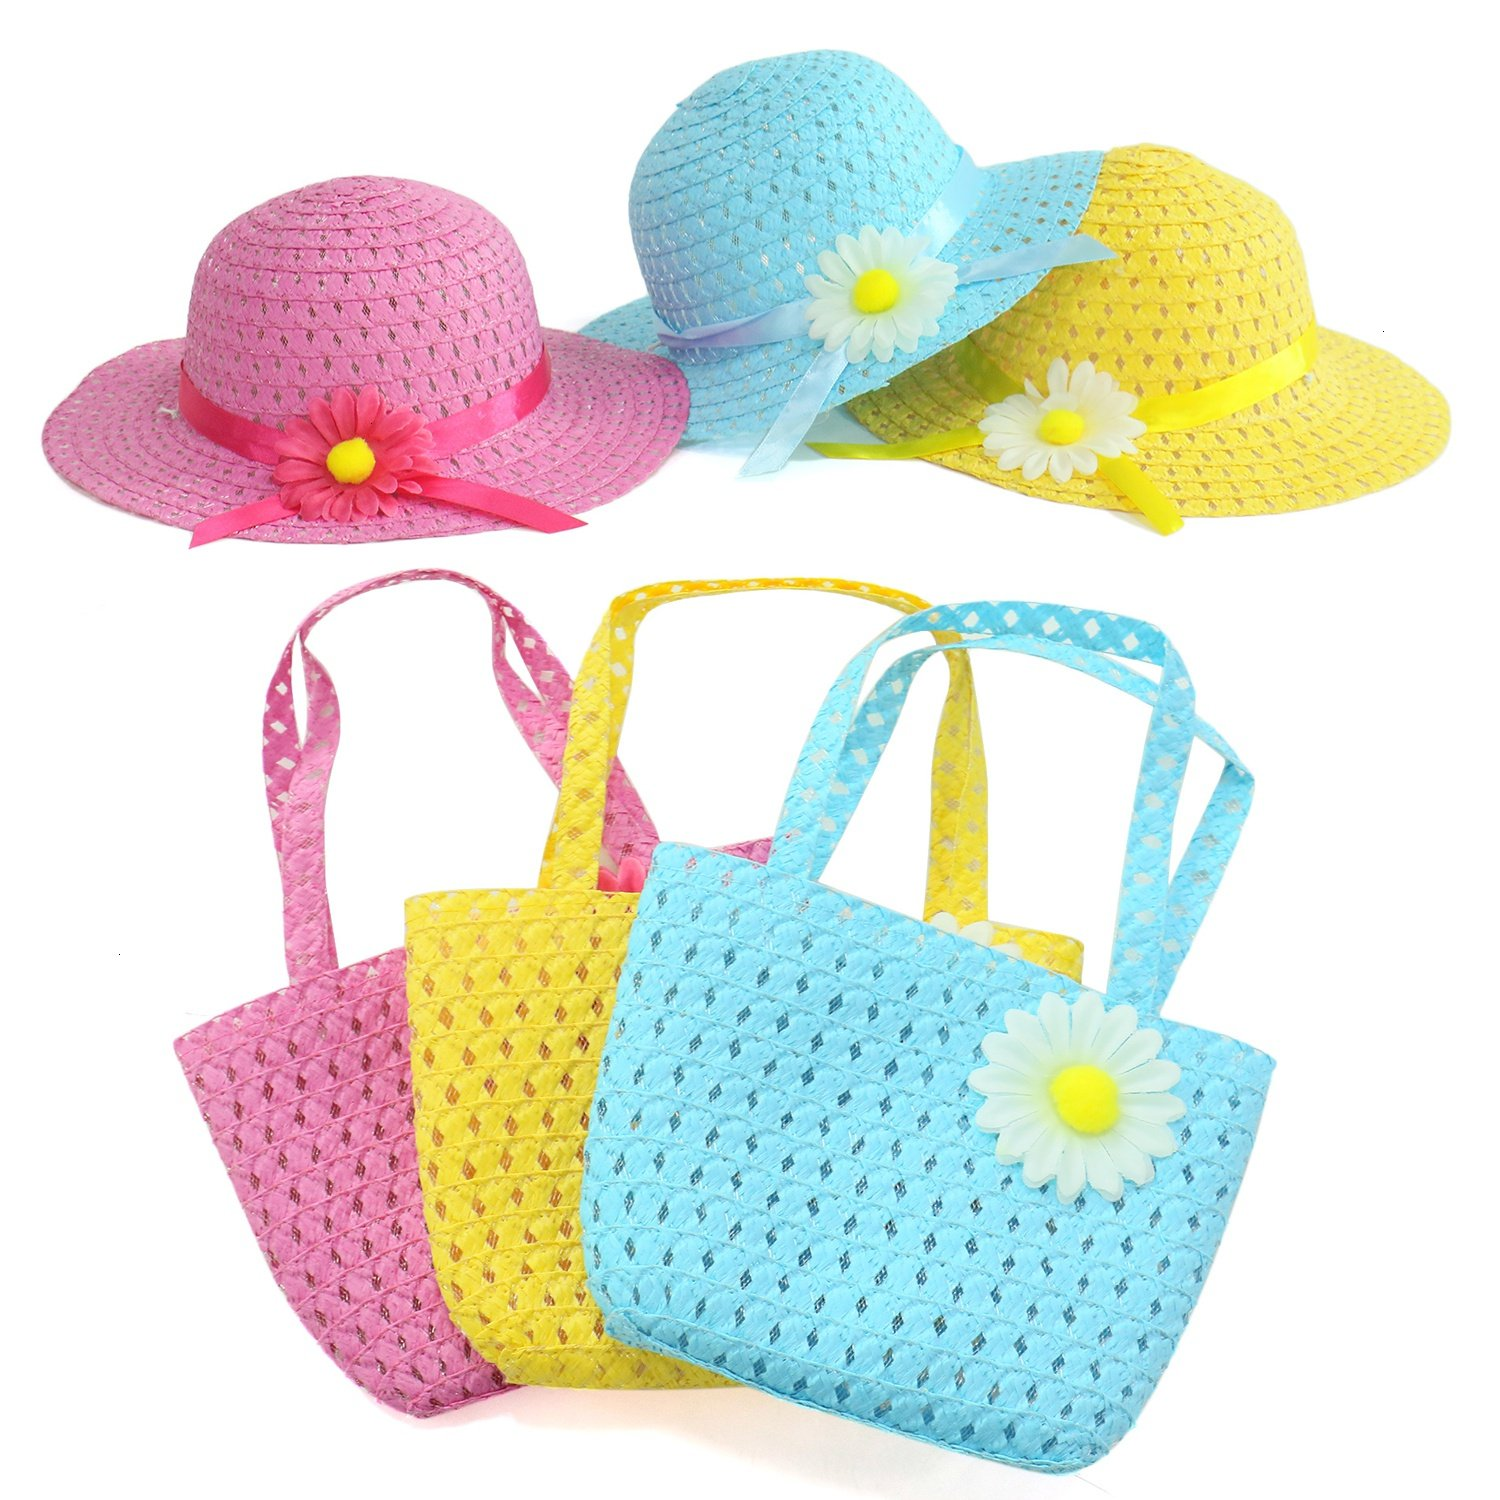 Girl's Straw Hat and Purse Sets Tea Party Hat Sets,3 Purses,3 Daisy Flower Sunhats(Blue,Yellow,Pink)